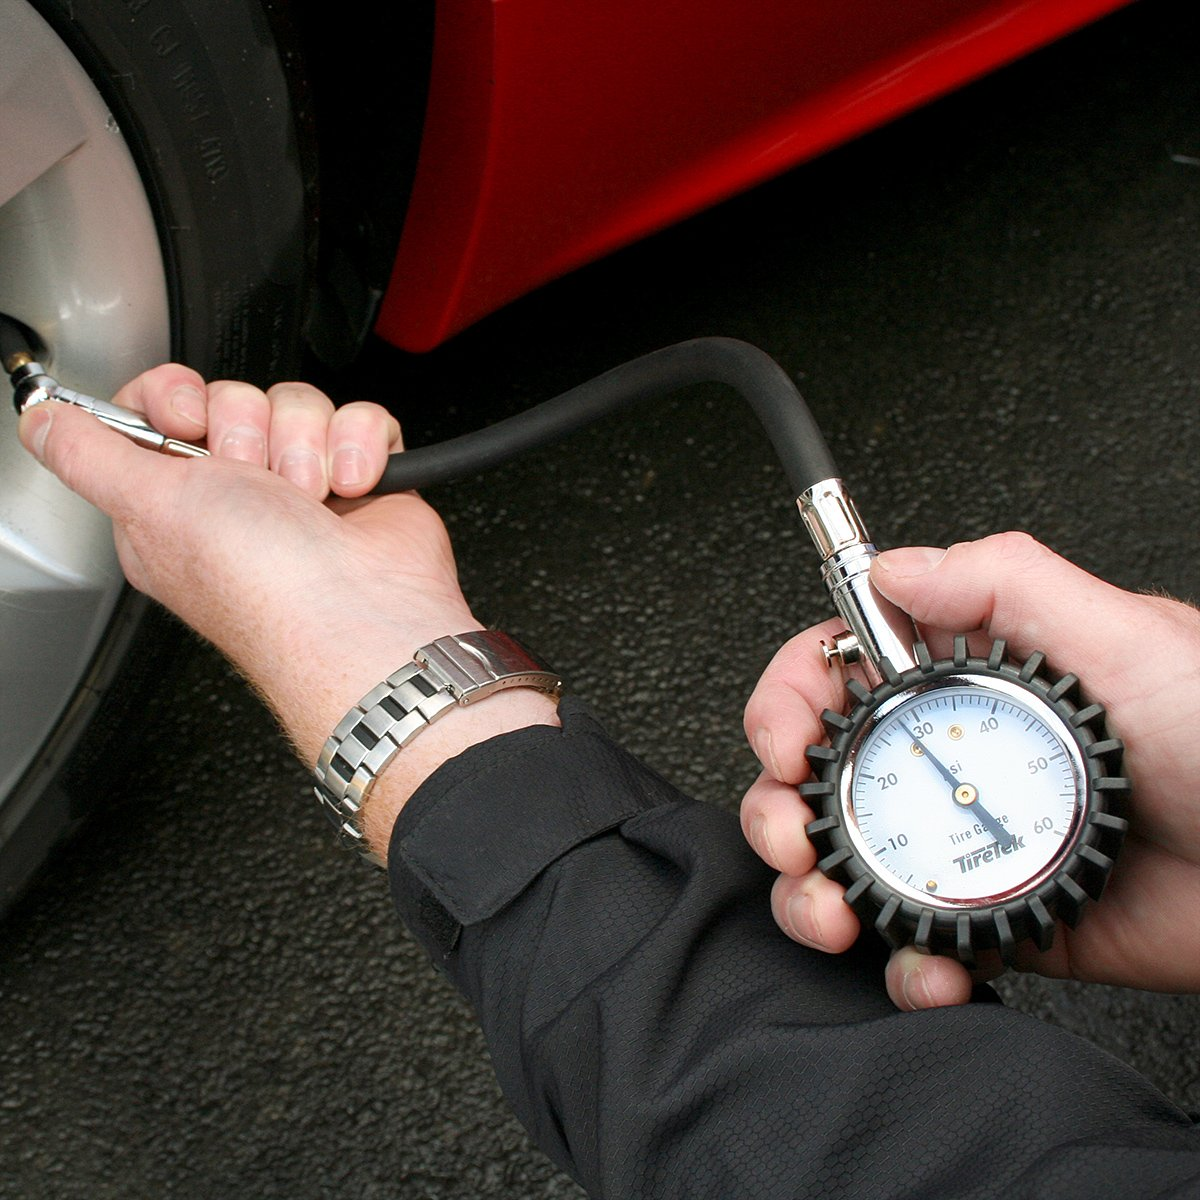 How to use normal pressure gauge